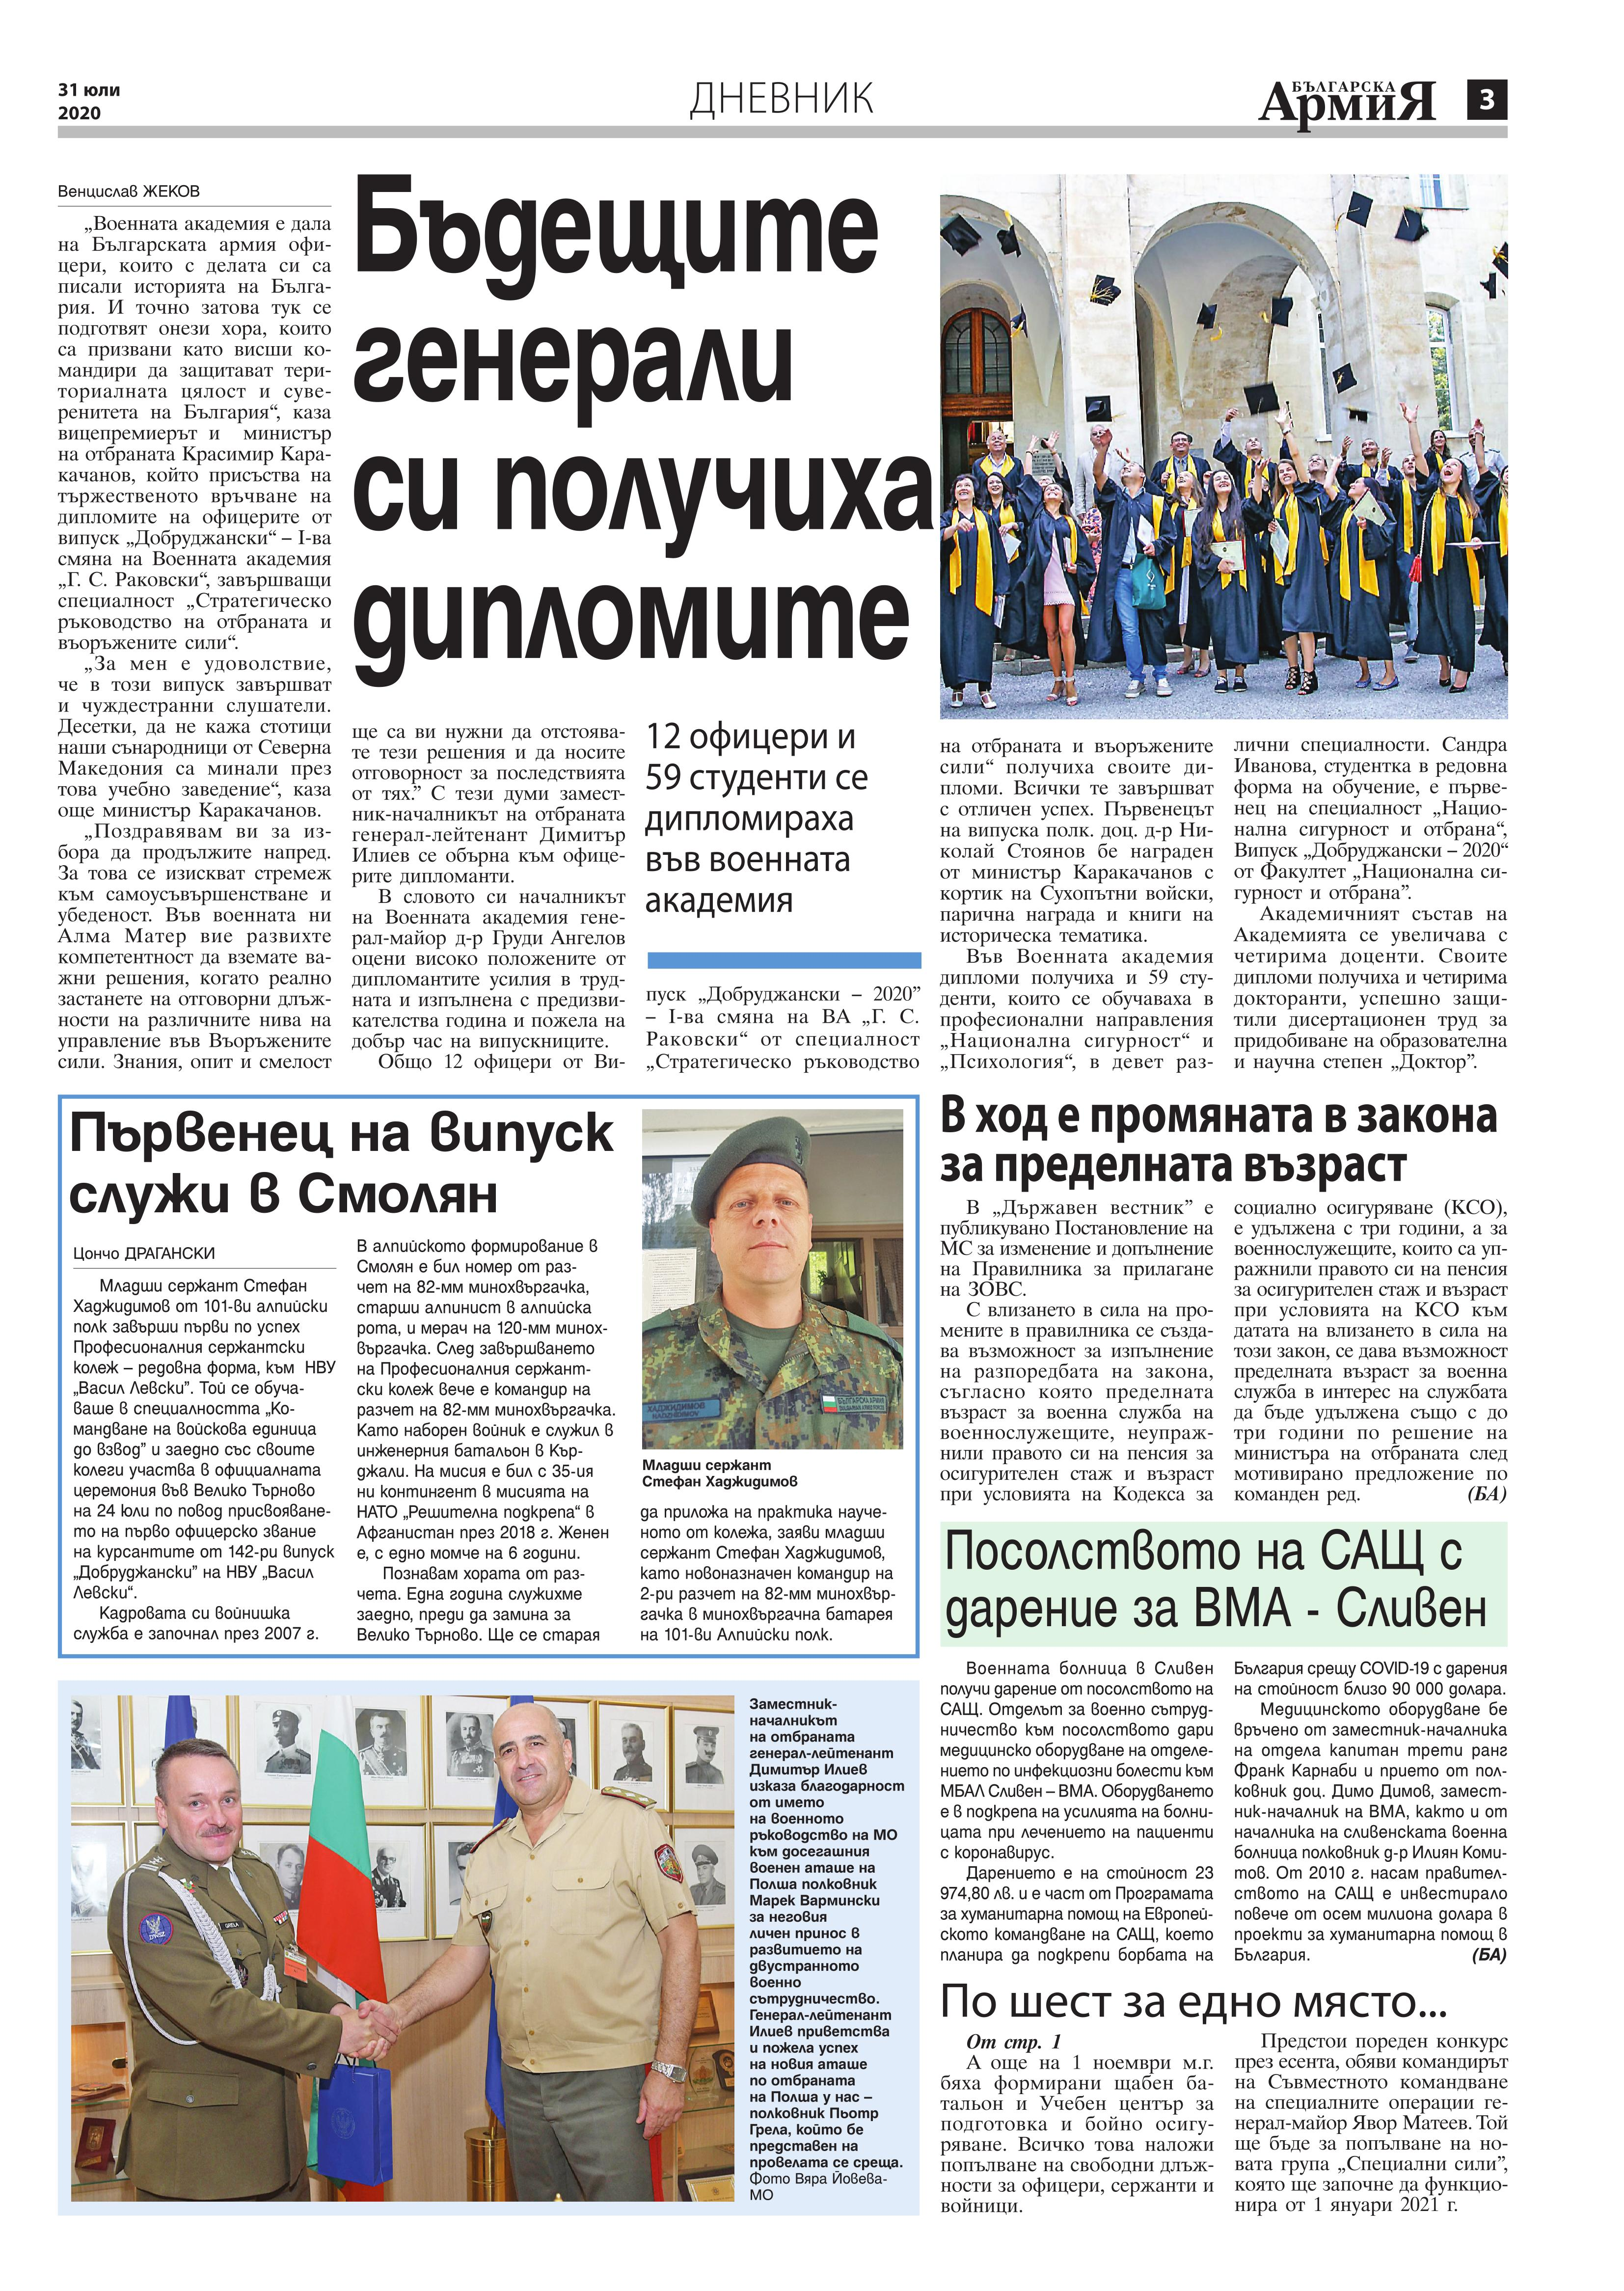 https://www.armymedia.bg/wp-content/uploads/2015/06/03.page1_-145.jpg